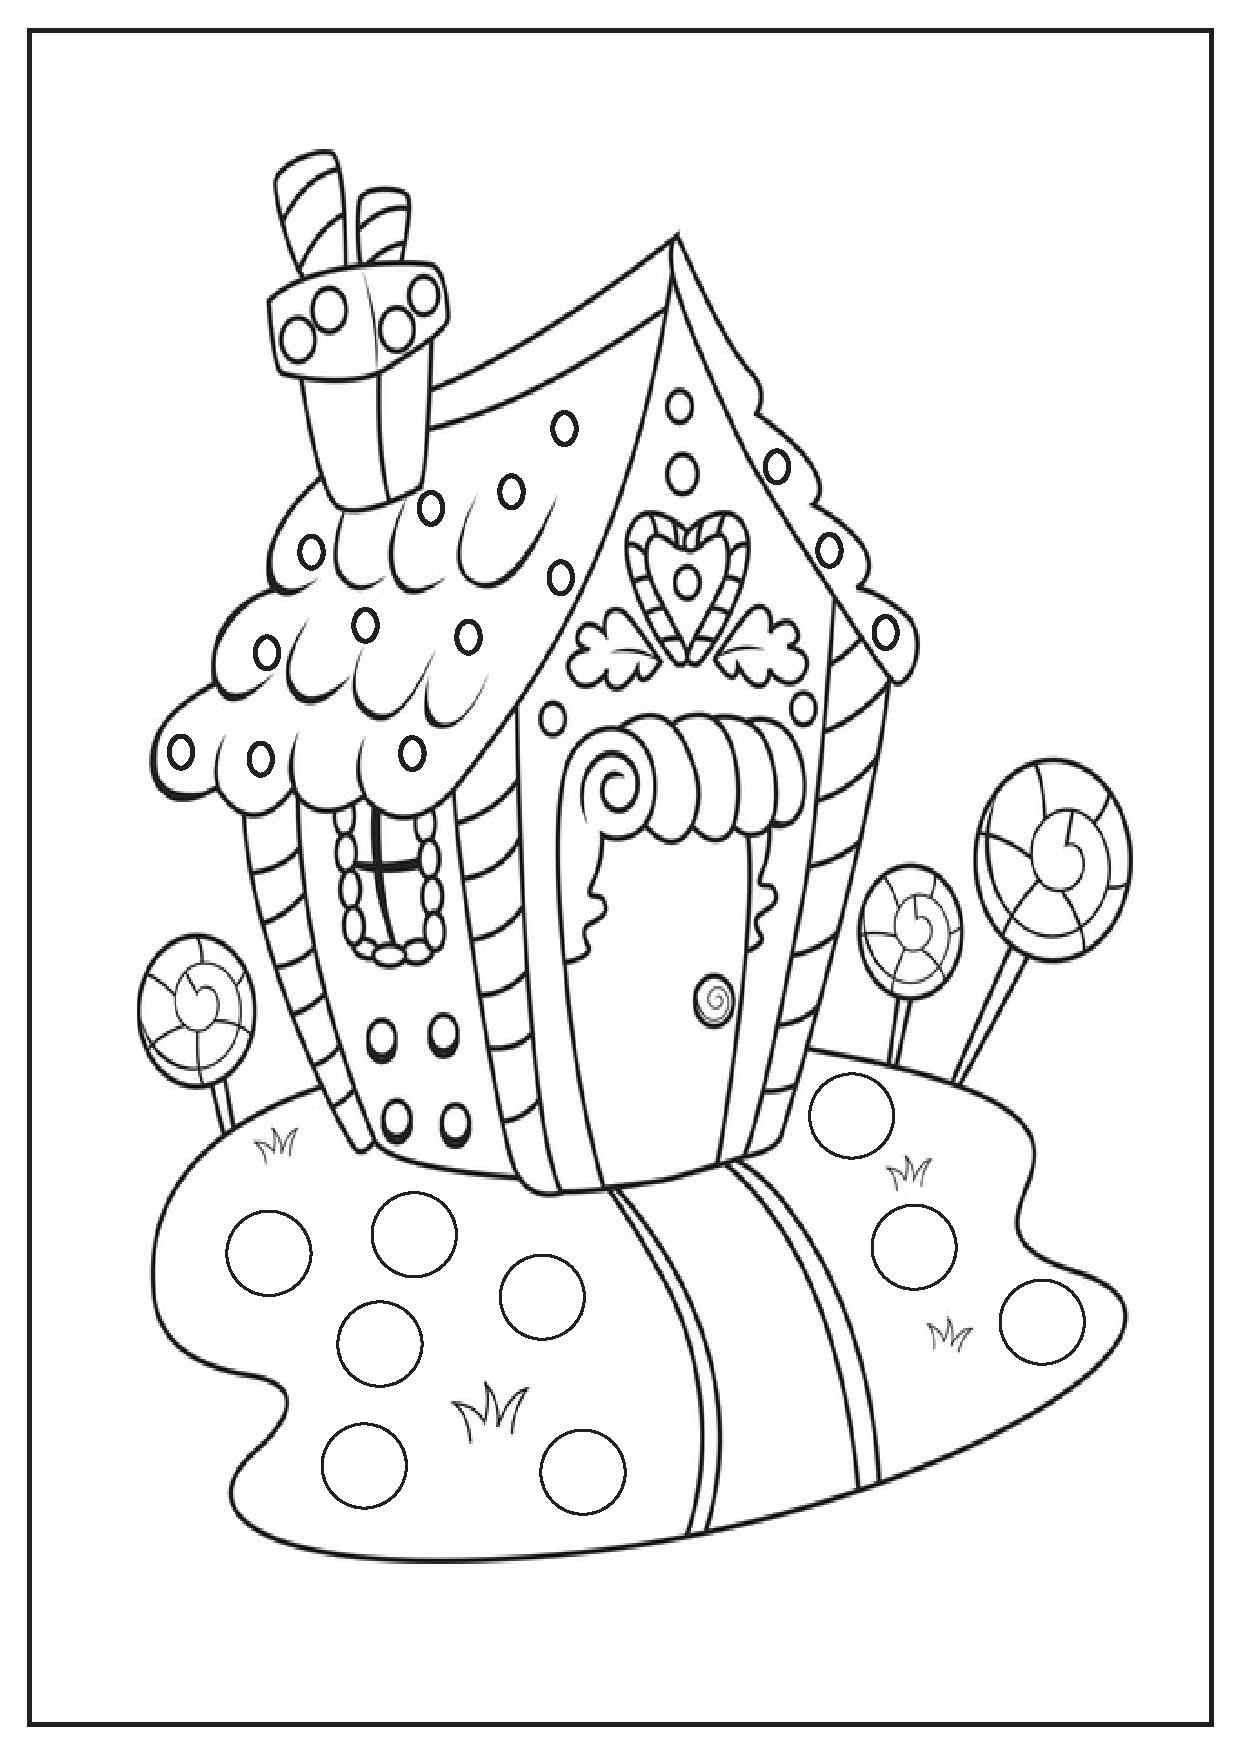 Christmas Colouring Pages For Kindergarten With Coloring Sheets Only